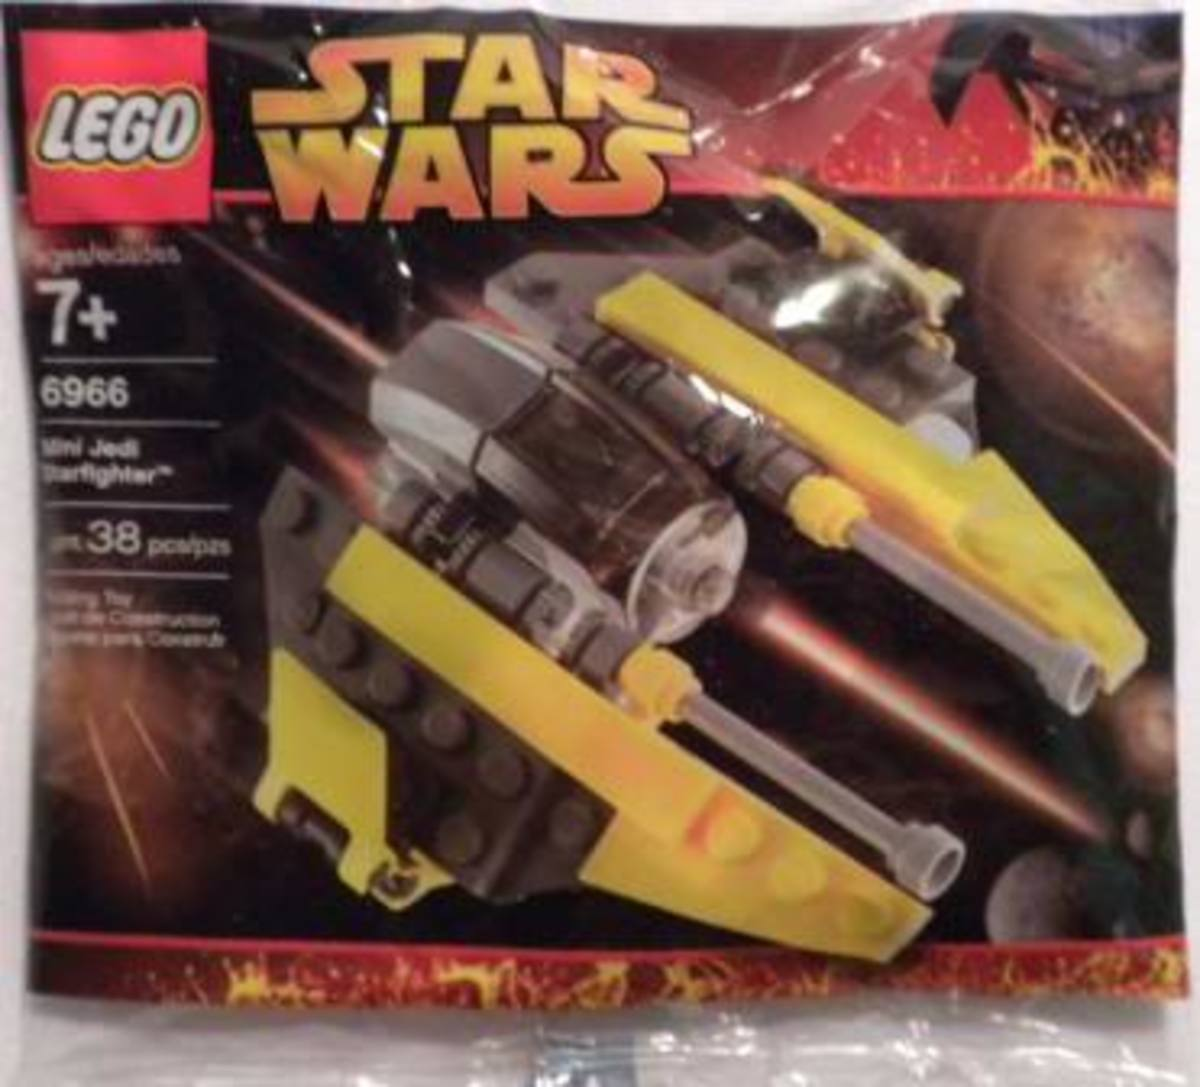 LEGO Star Wars Jedi Starfighter 6966 Bag